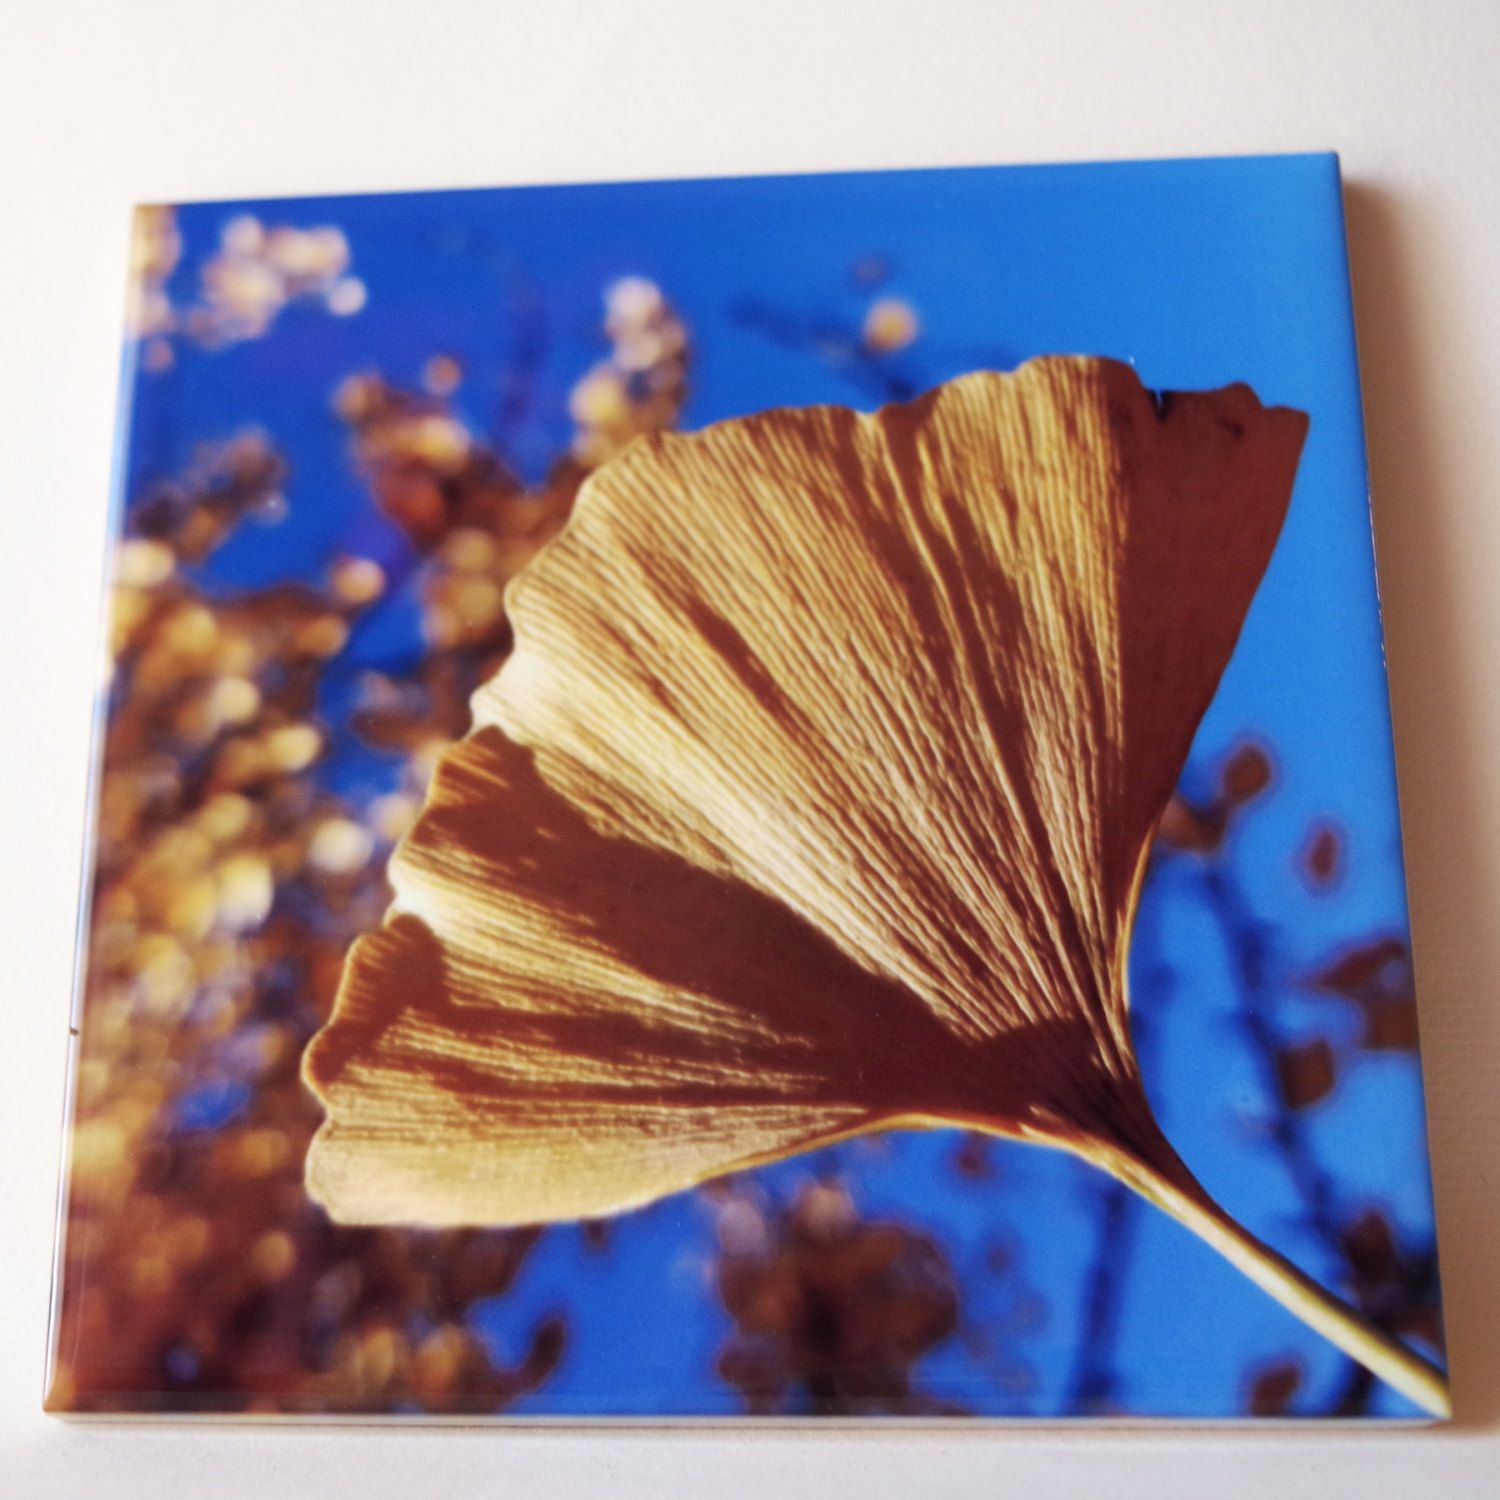 Ceramic tile trivet ginkgo gold with sapphire blue sky autumn ceramic tile trivet ginkgo gold with sapphire blue sky autumn color photograph dailygadgetfo Choice Image